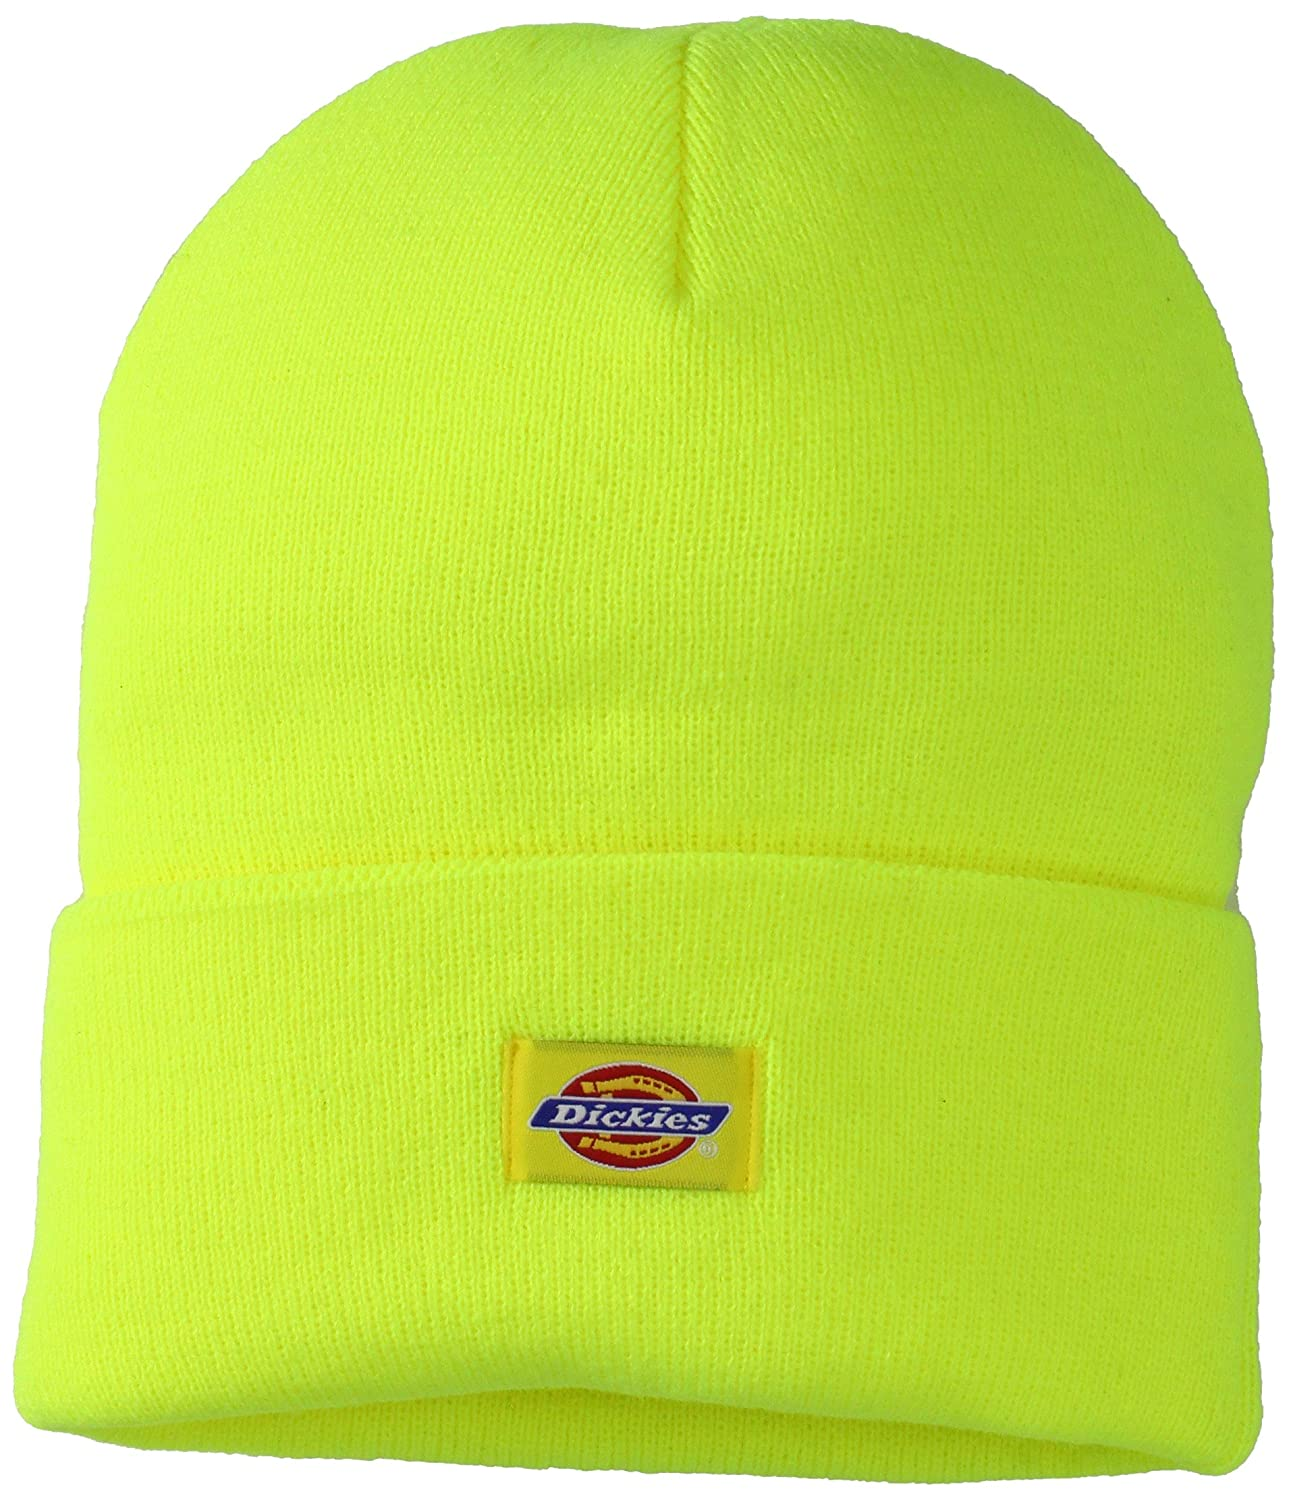 Dickies Mens 14 Inch Cuffed Knit Beanie Hat Black One Size Bioworld  KC145347DIC0 679dc90144a7